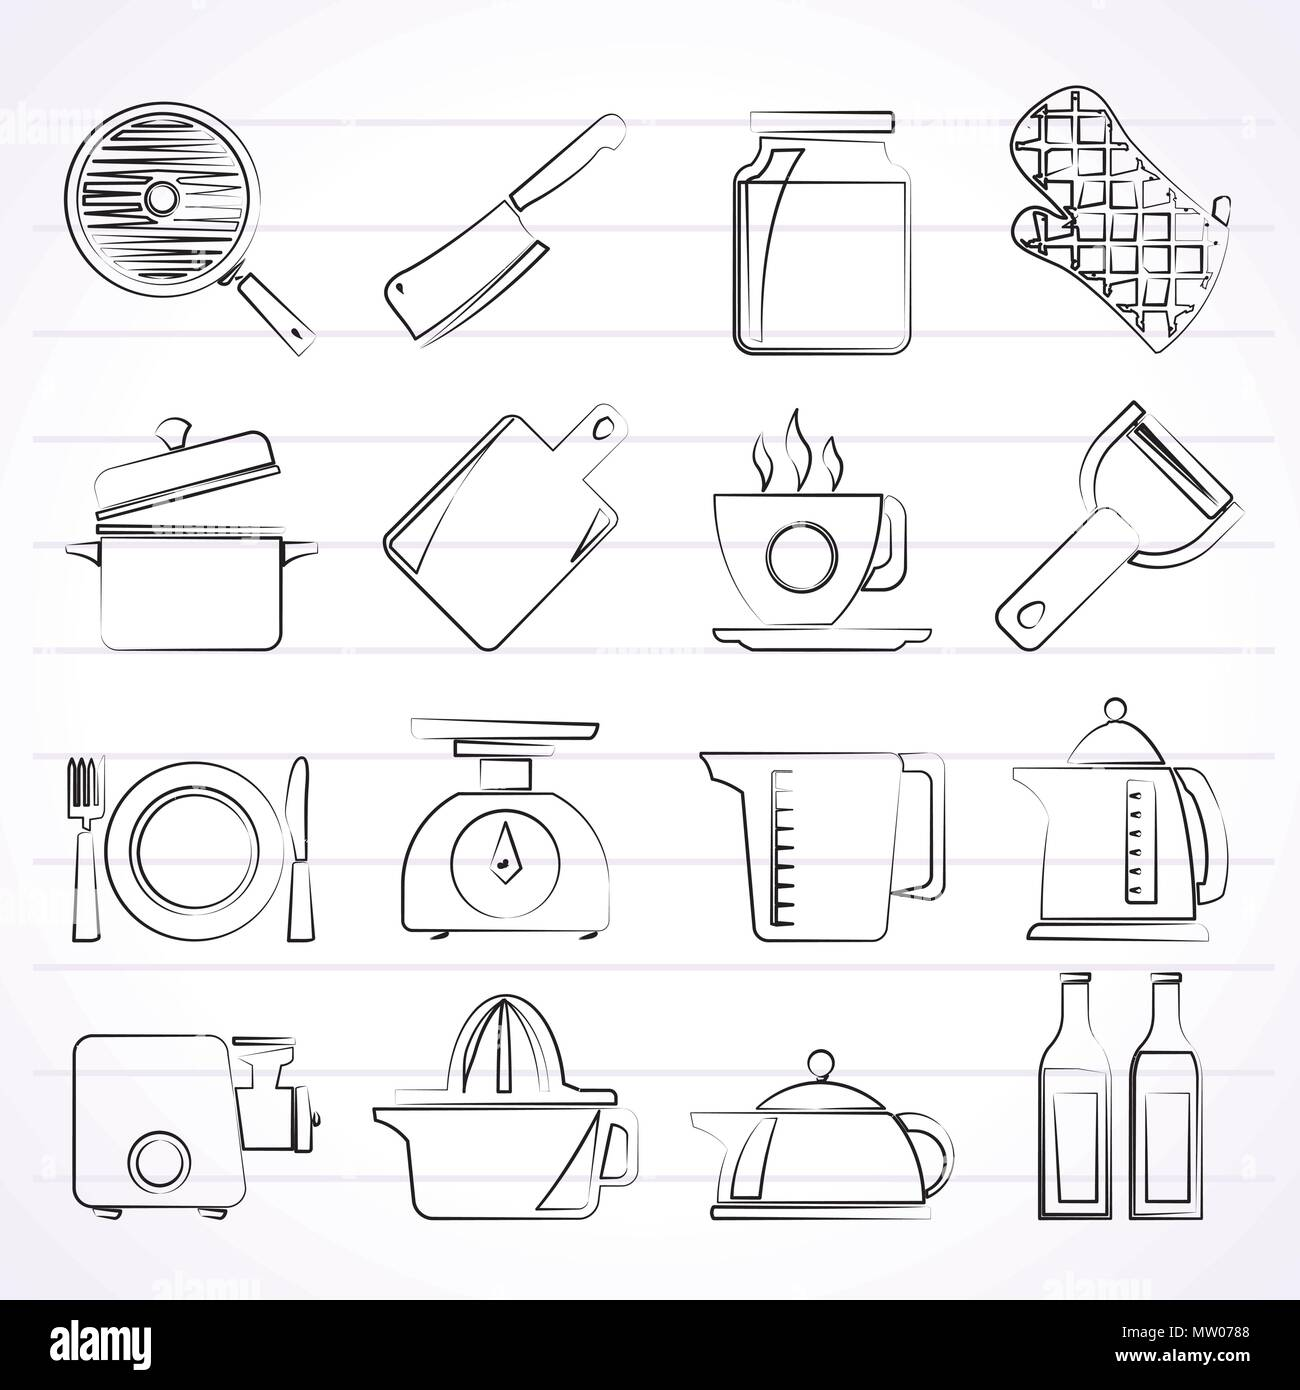 Home kitchen equipment icons - vector icon set - Stock Vector